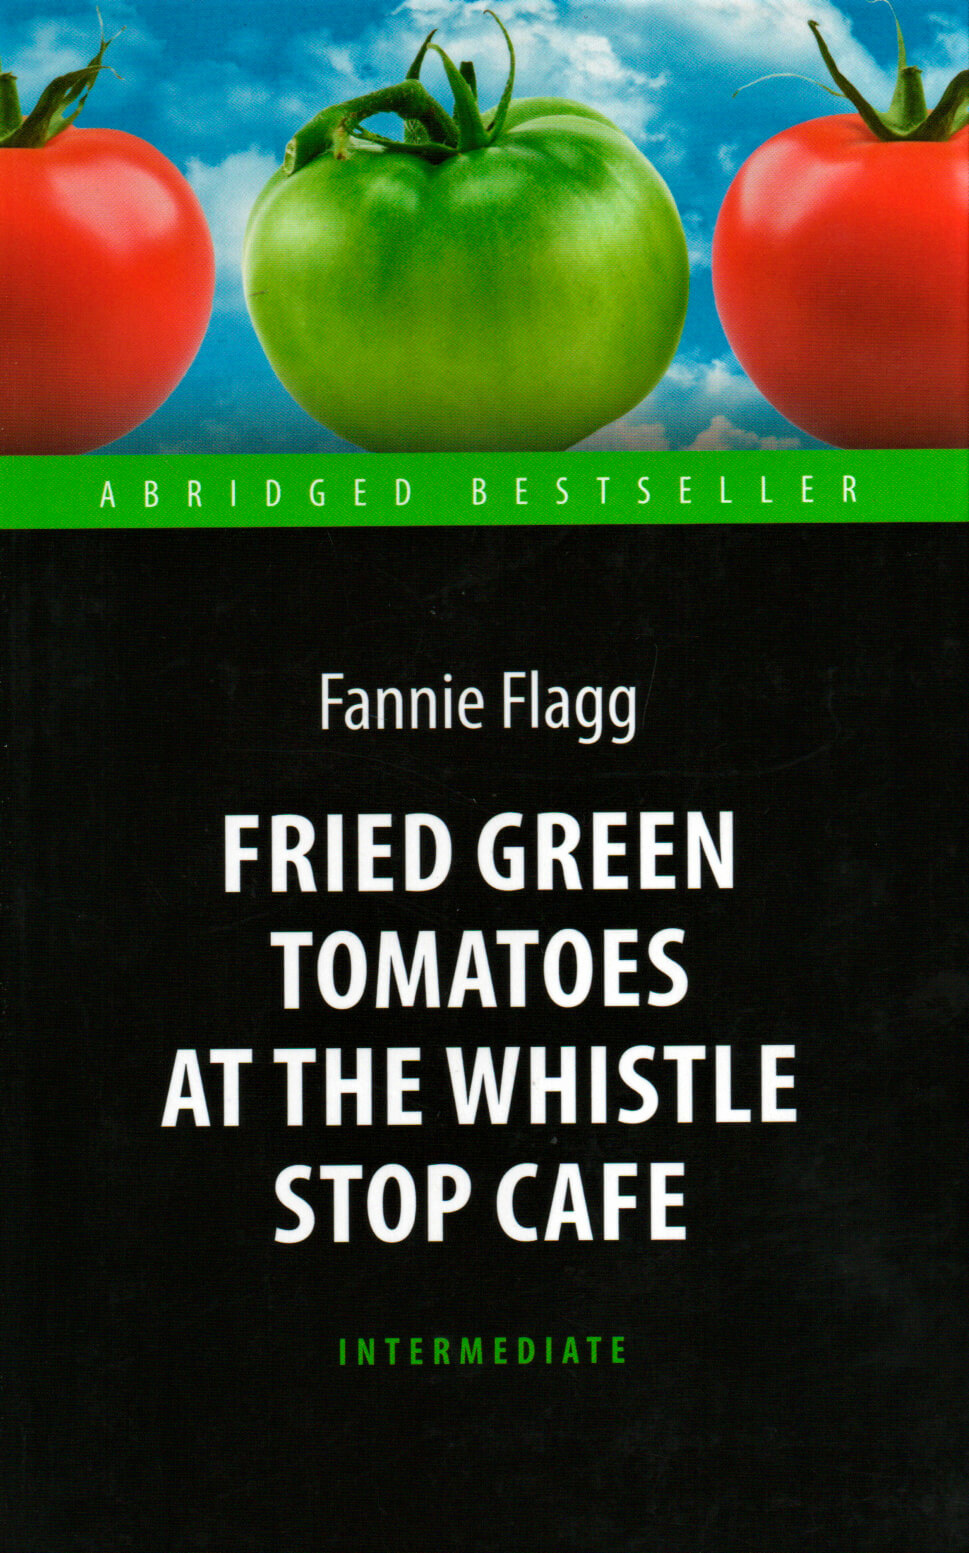 Fried Green Tomatoes at the Whistle Stop Cafe. Автор — Фэнни Флэгг. Переплет —